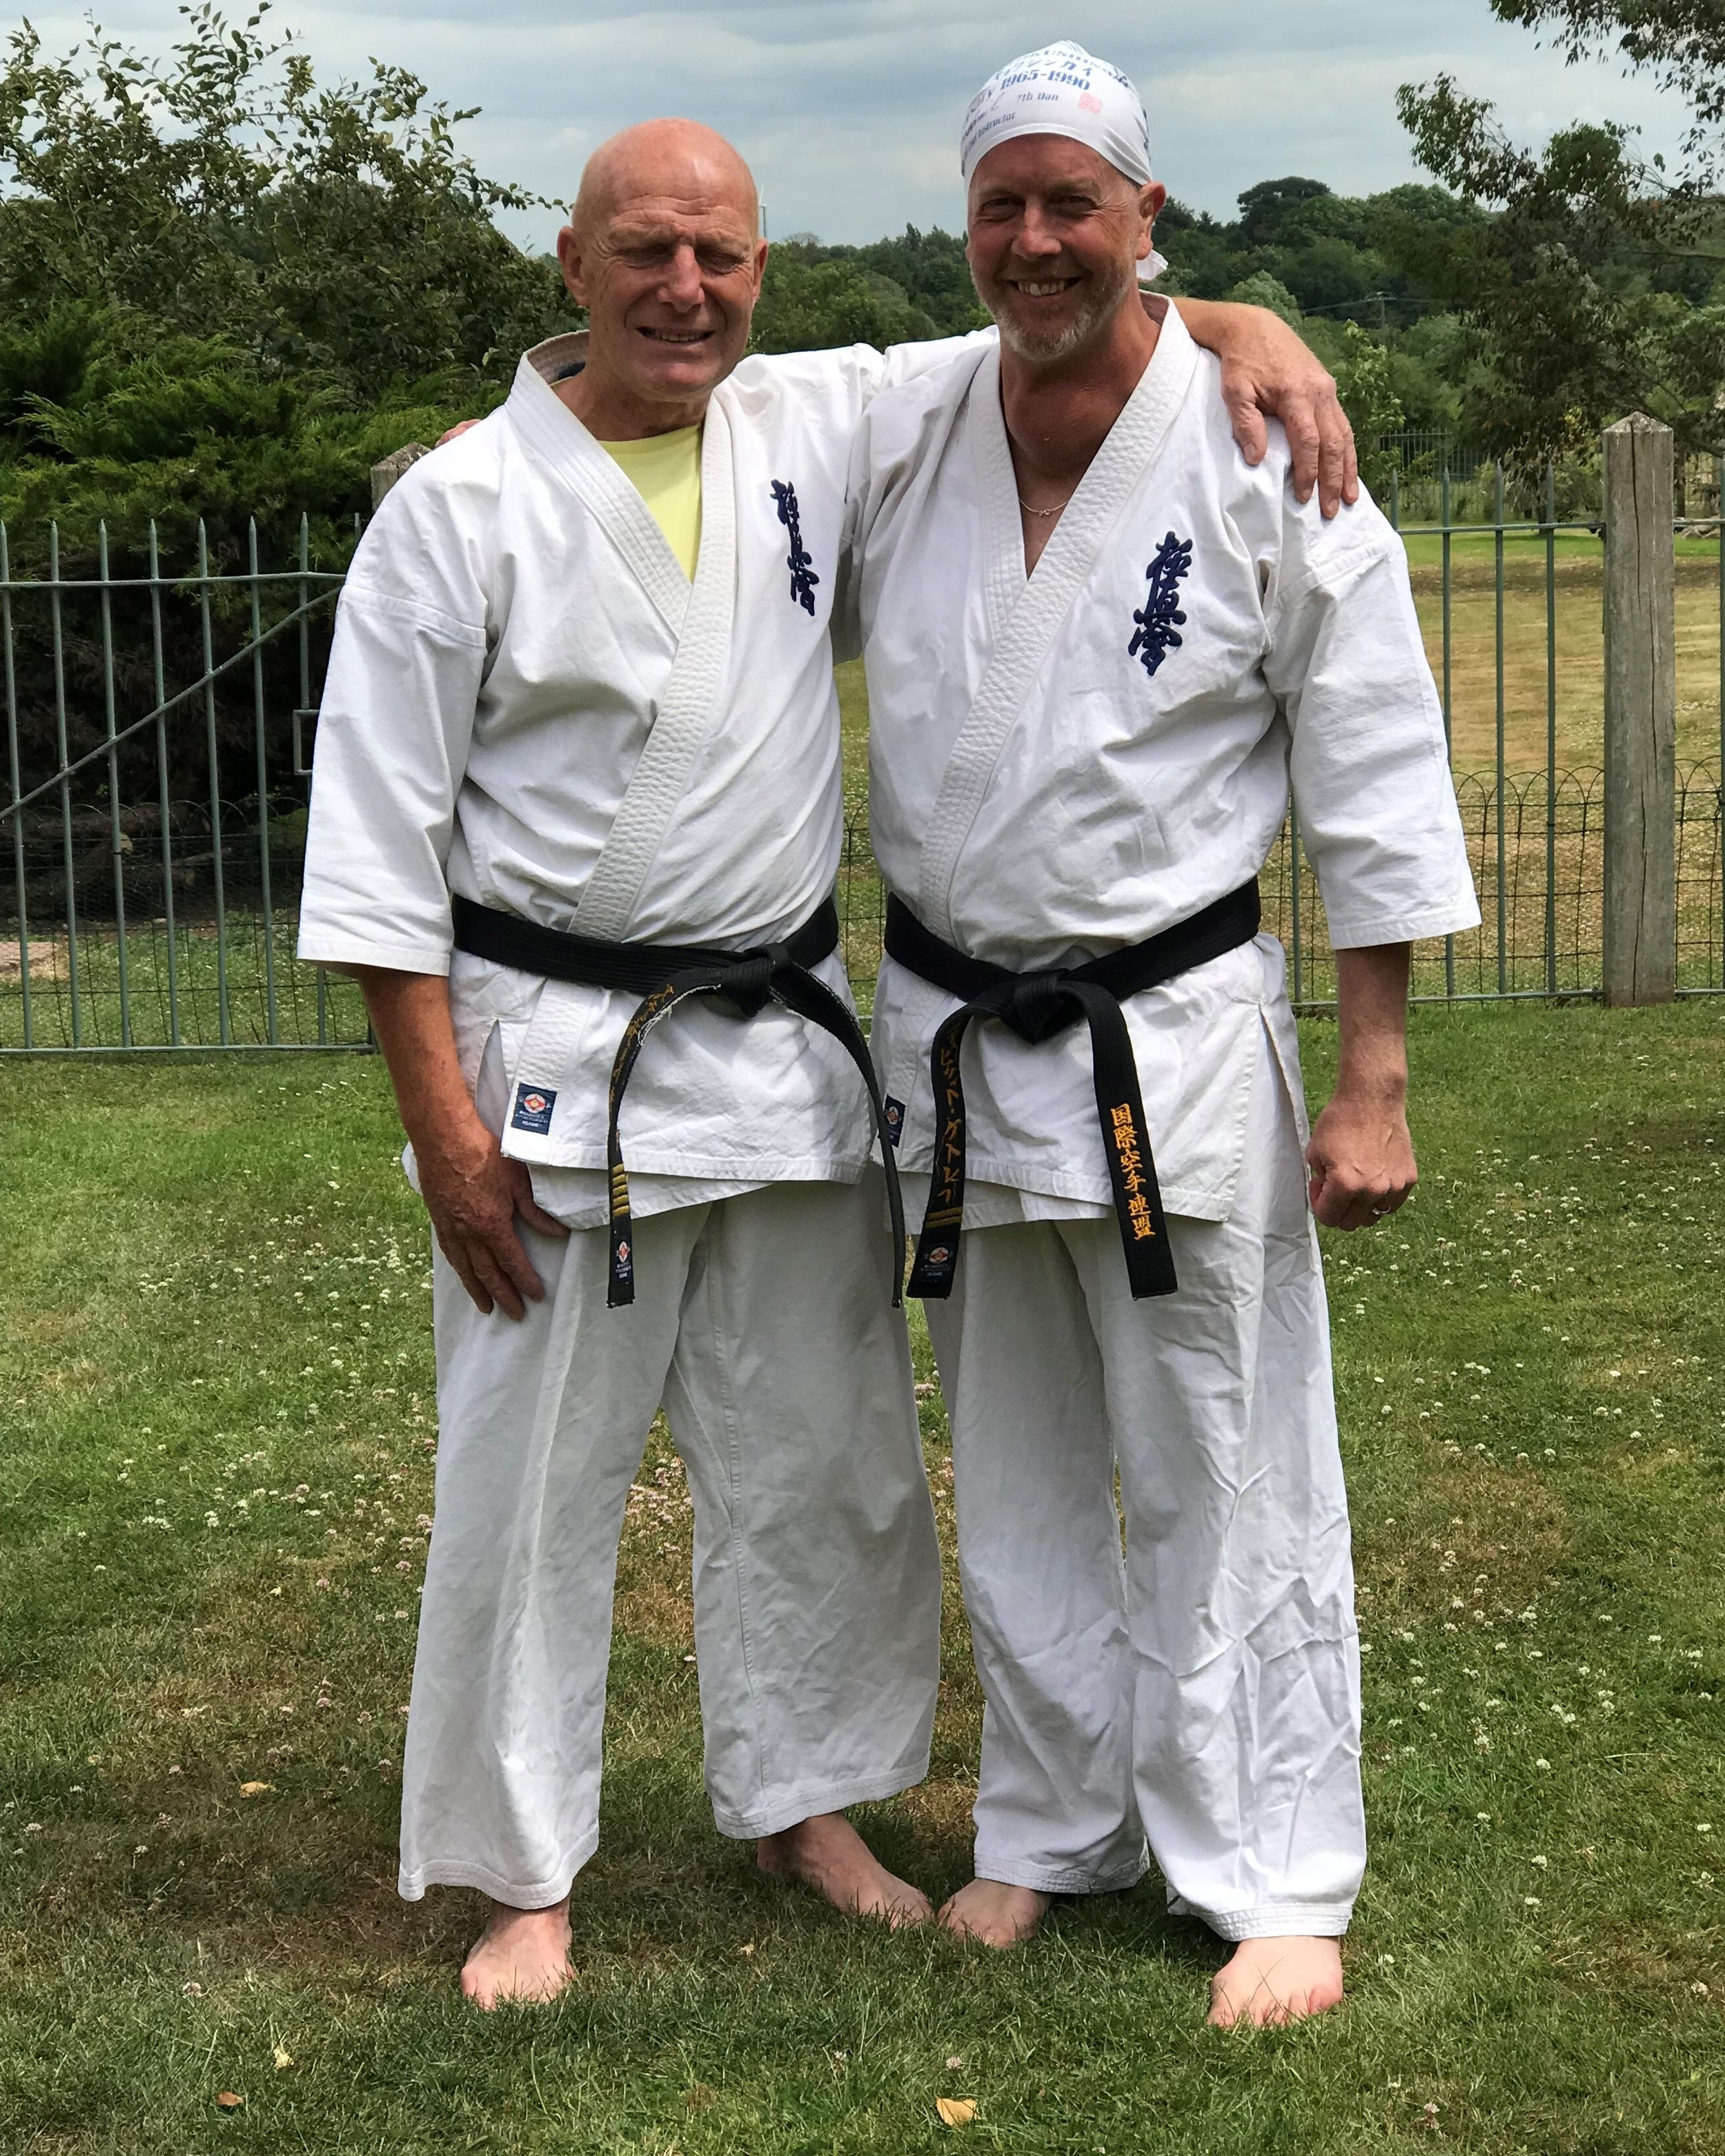 Senpai Dave pictured here at his last training session with Shihan Stuart Wright.